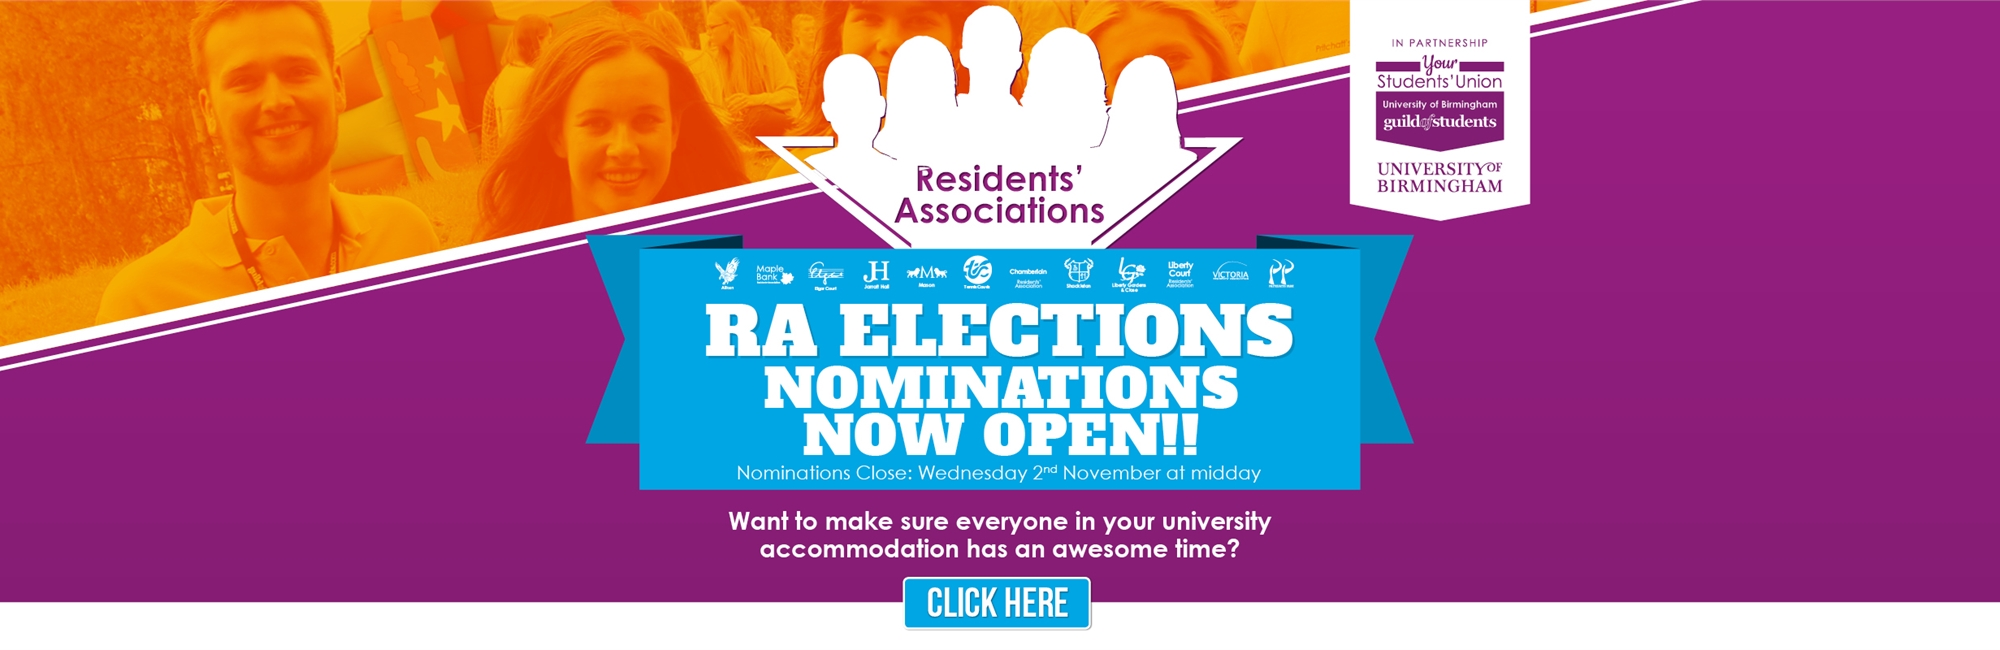 RA Elections - Nominations now open